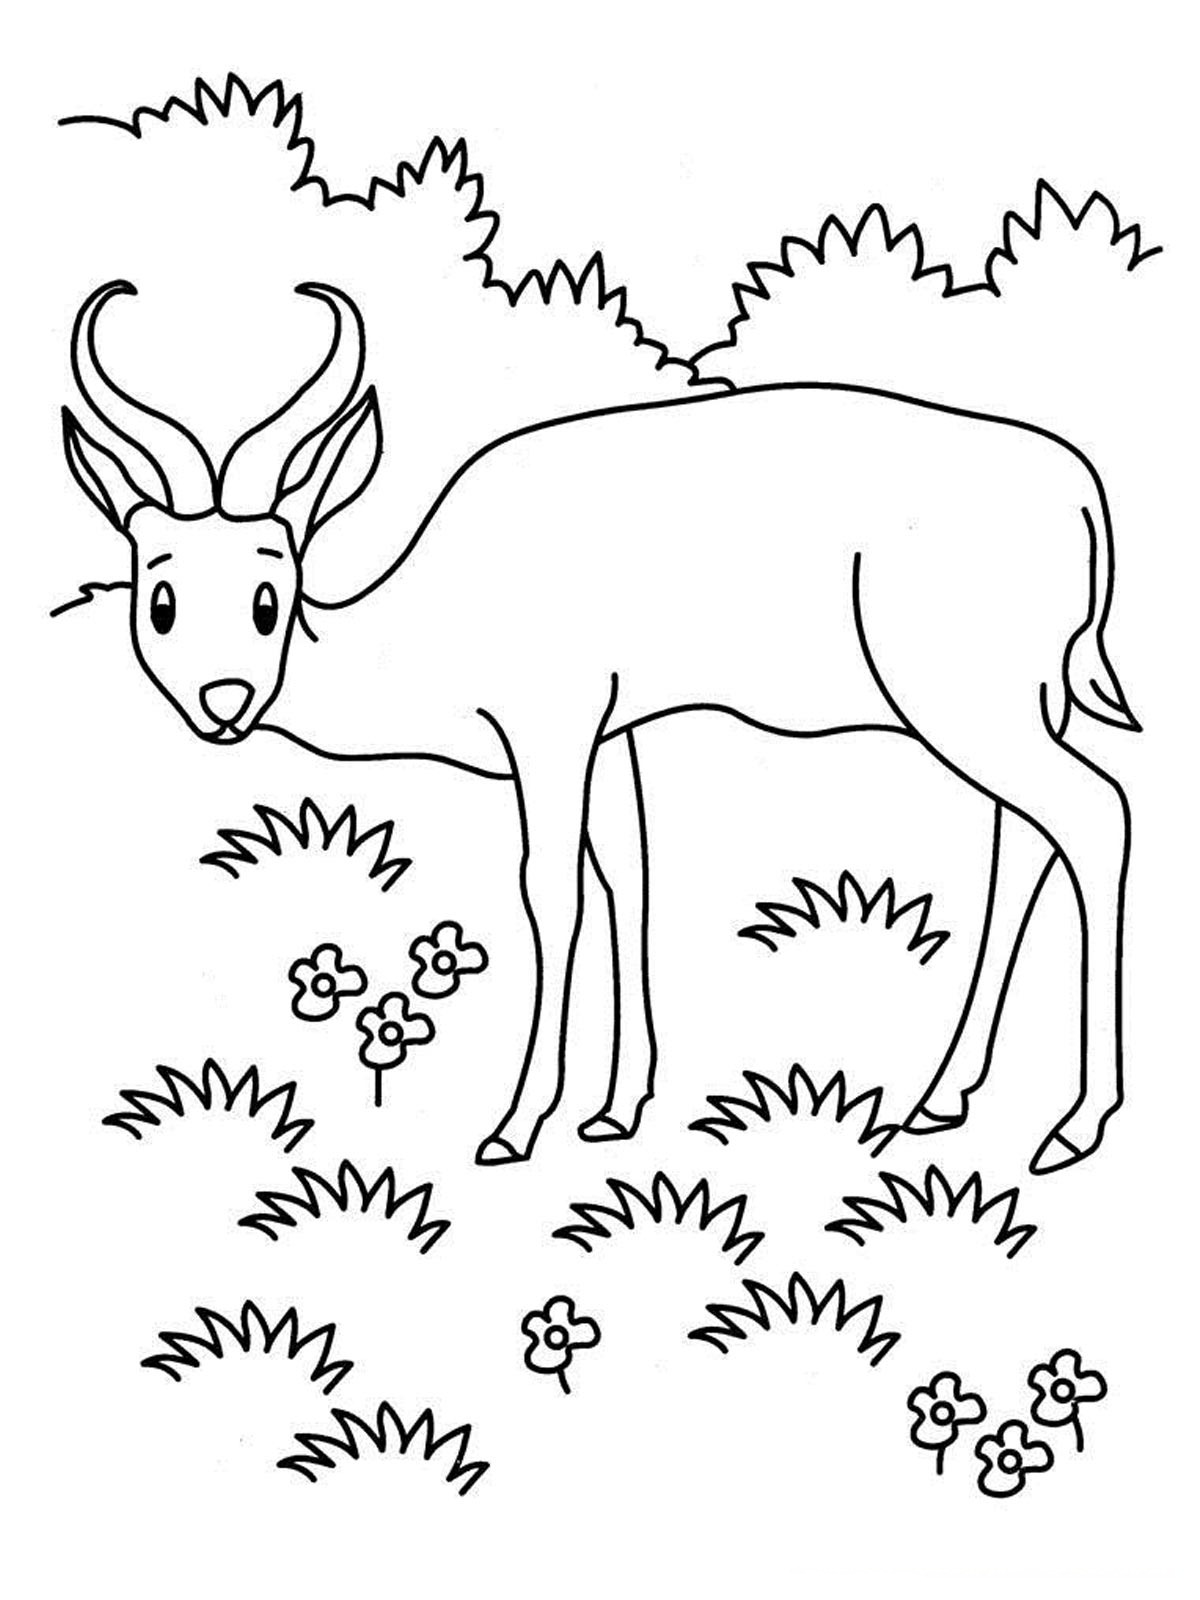 Grassland Coloring Pages